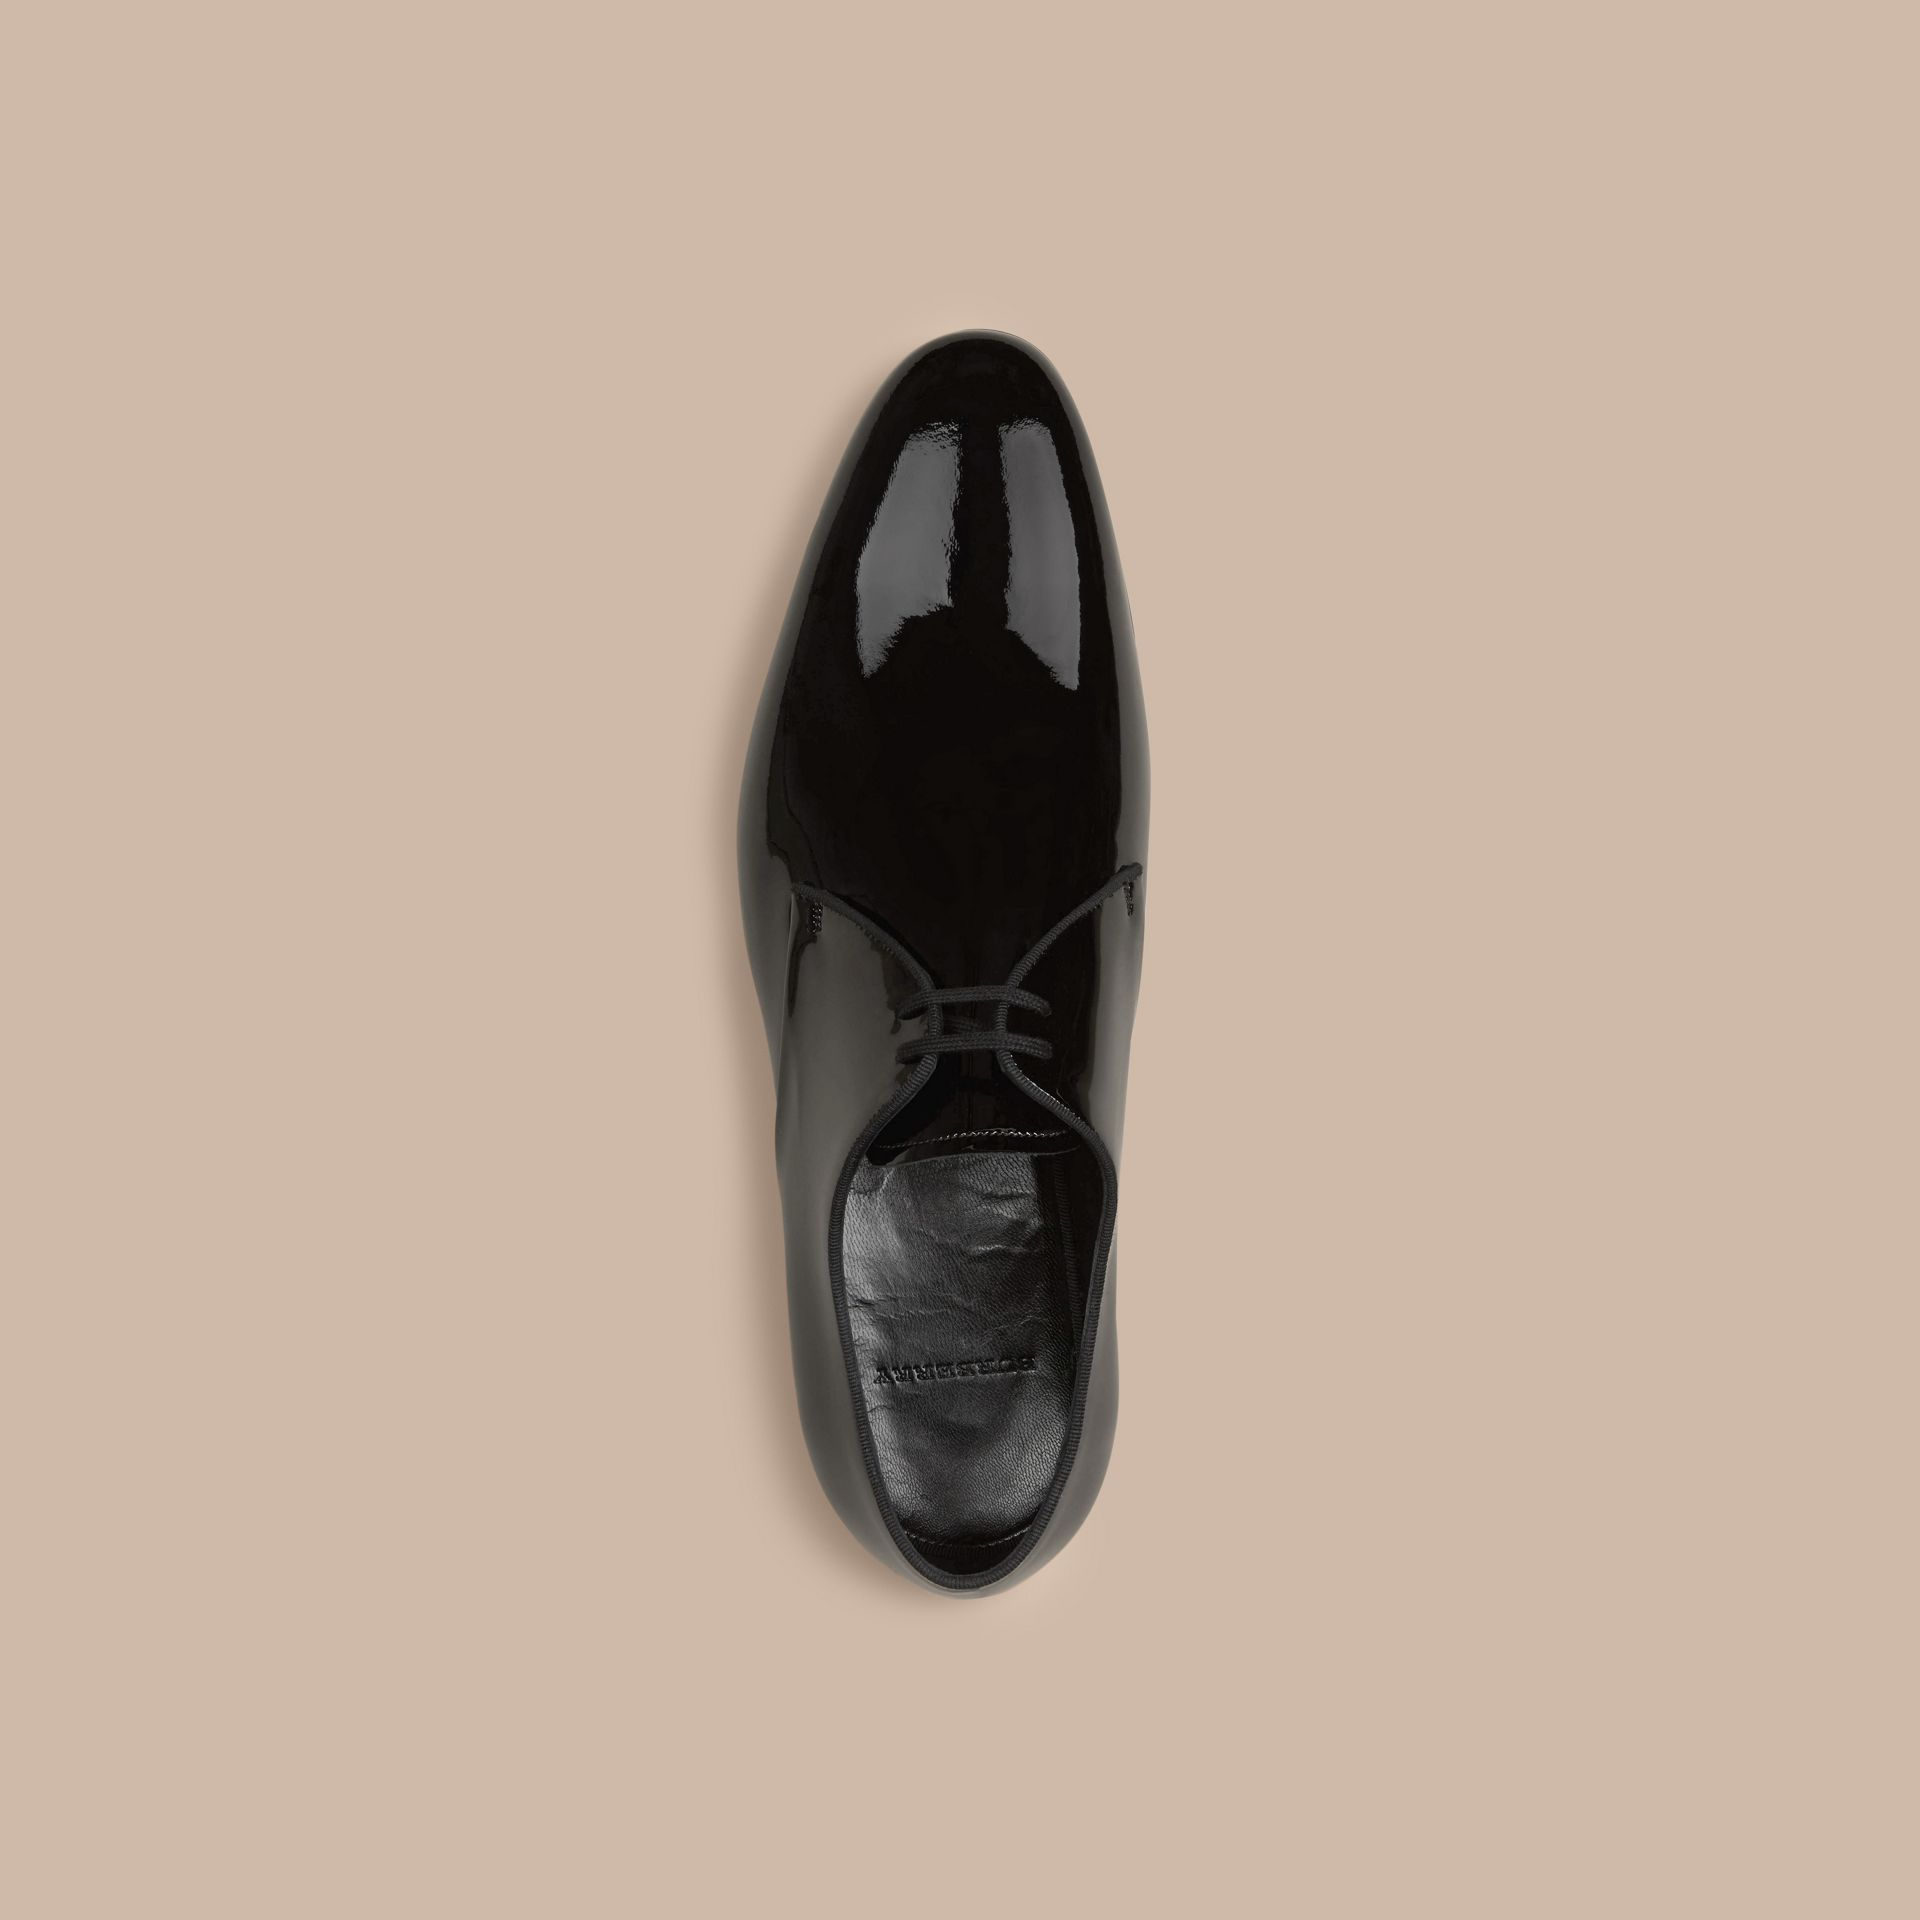 Polished Leather Lace-up Shoes in Black - Men | Burberry - gallery image 3